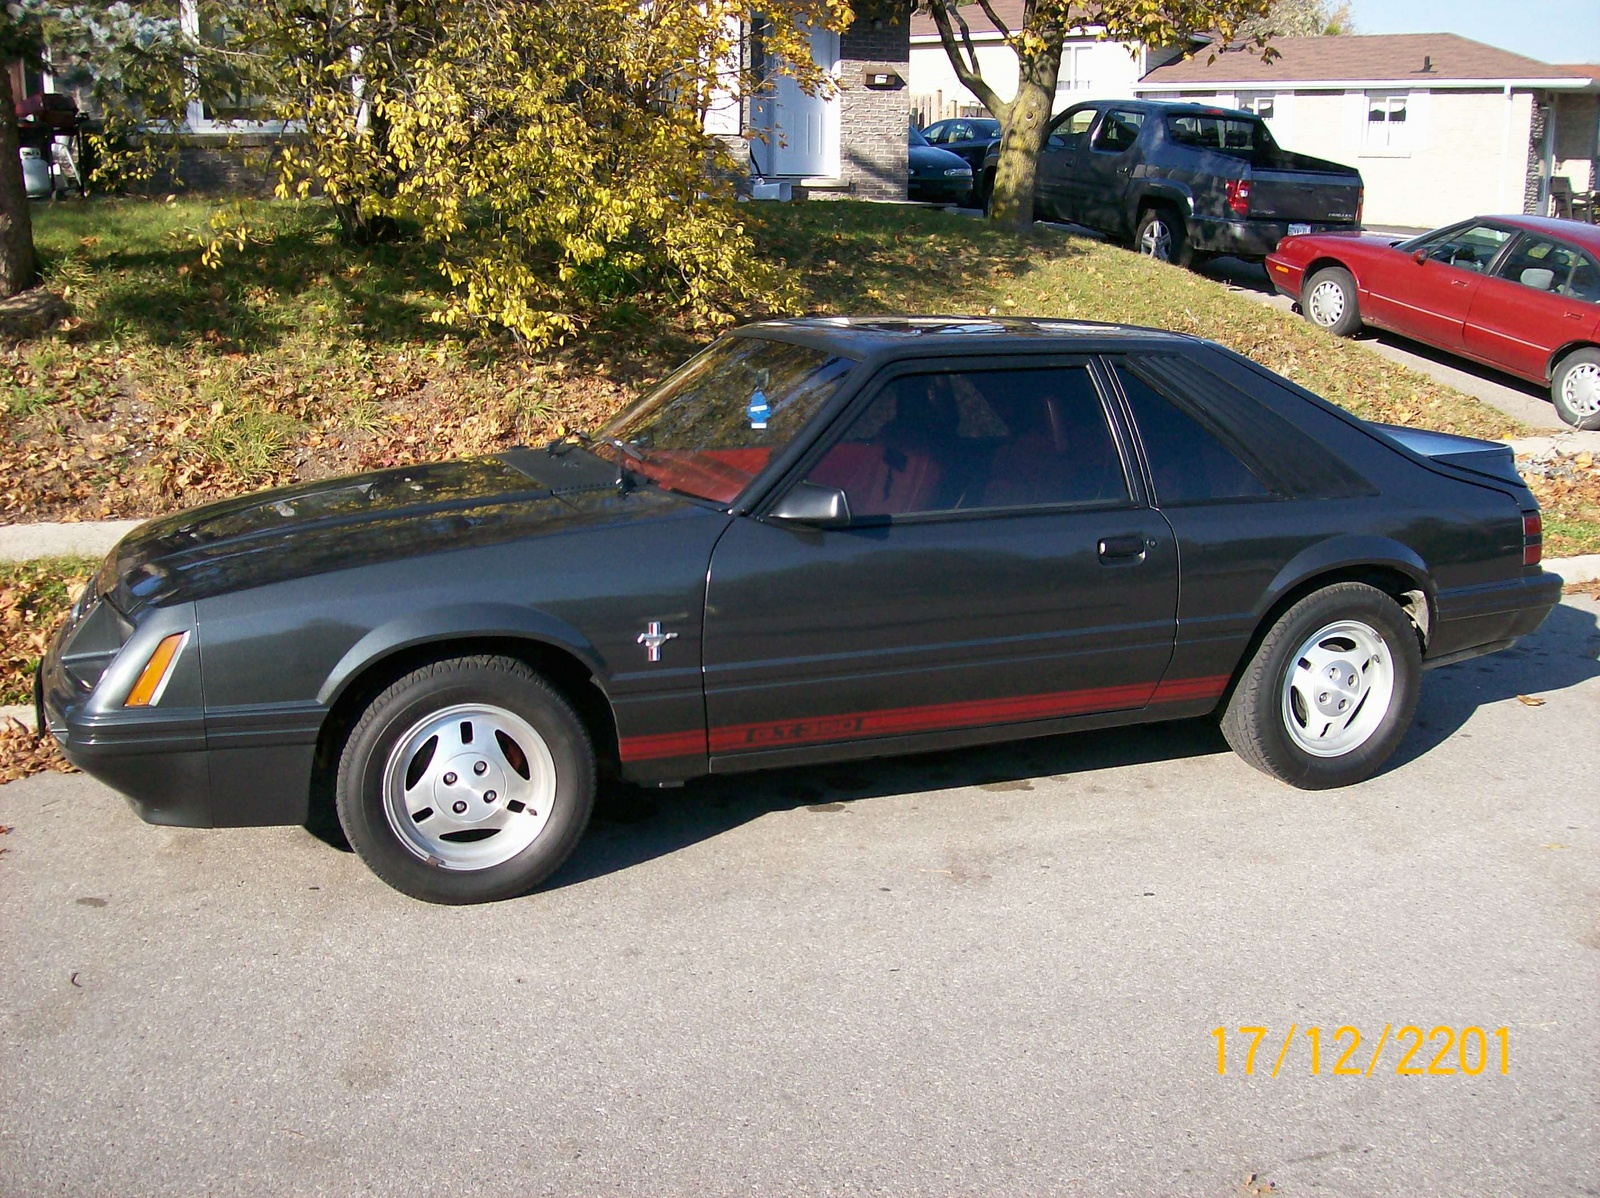 Picture of 1984 ford mustang gt350 exterior - 1984 Ford Mustang Gt Specs Pictures